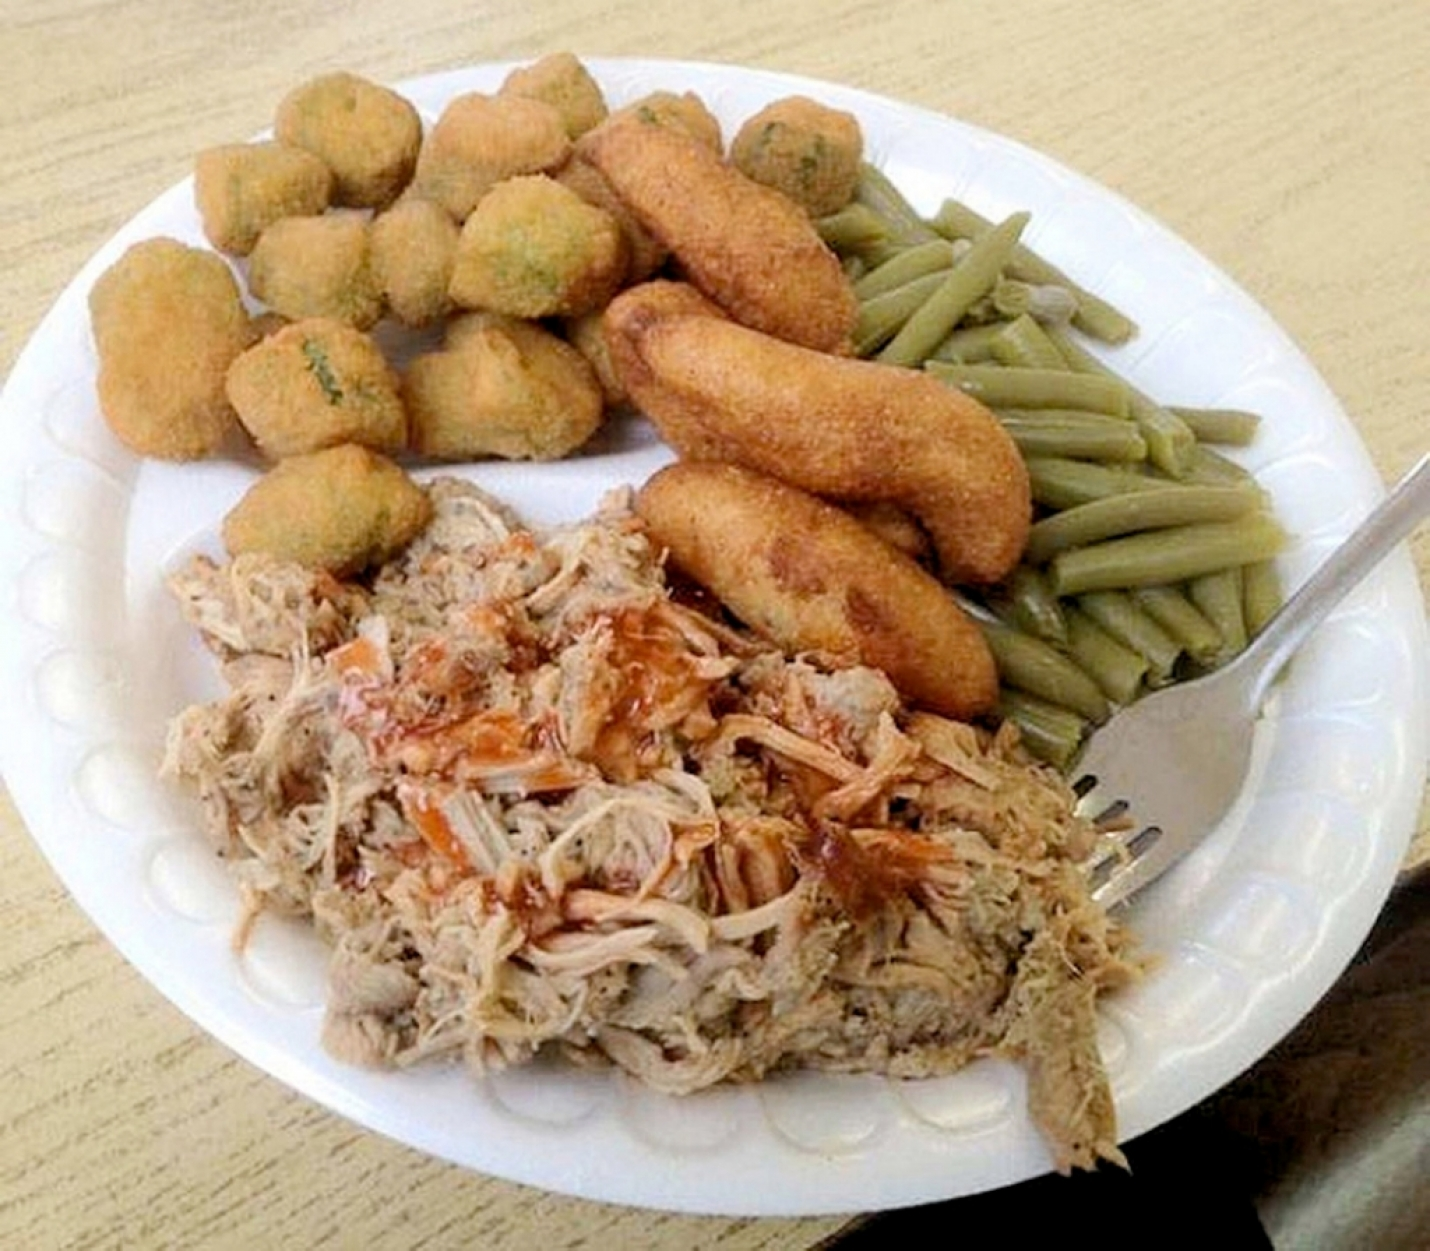 Spotlight On Coastal Cuisine: A&G BAR-B-QUE and Chicken: Offering Daily Specials